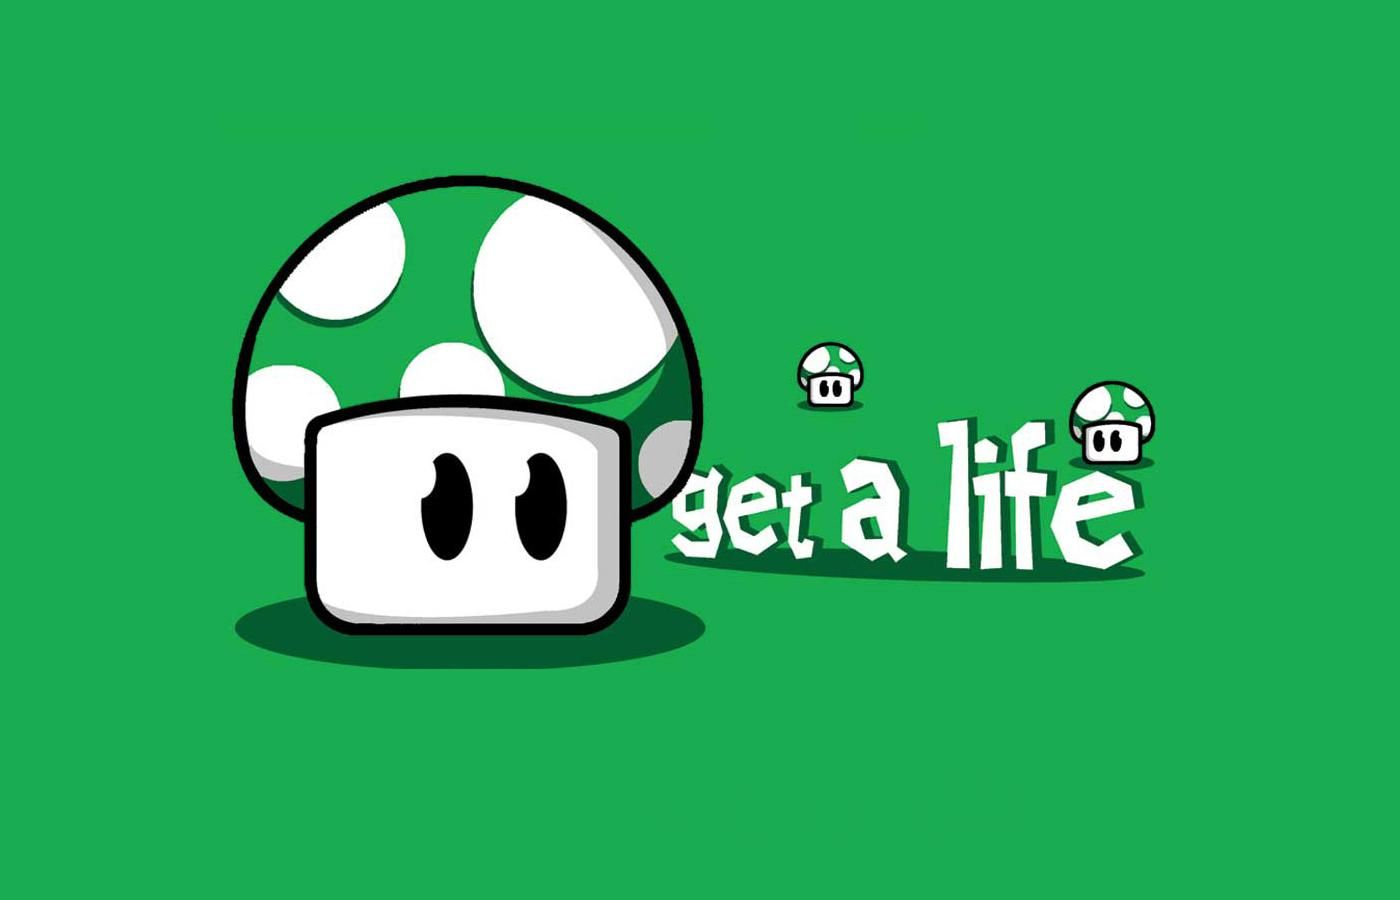 Pics photos hd wallpapers epic desktop s - Image Detail For Get A Life 1up Green Mushroom Hd Wallpapers Epic Desktop Backgrounds